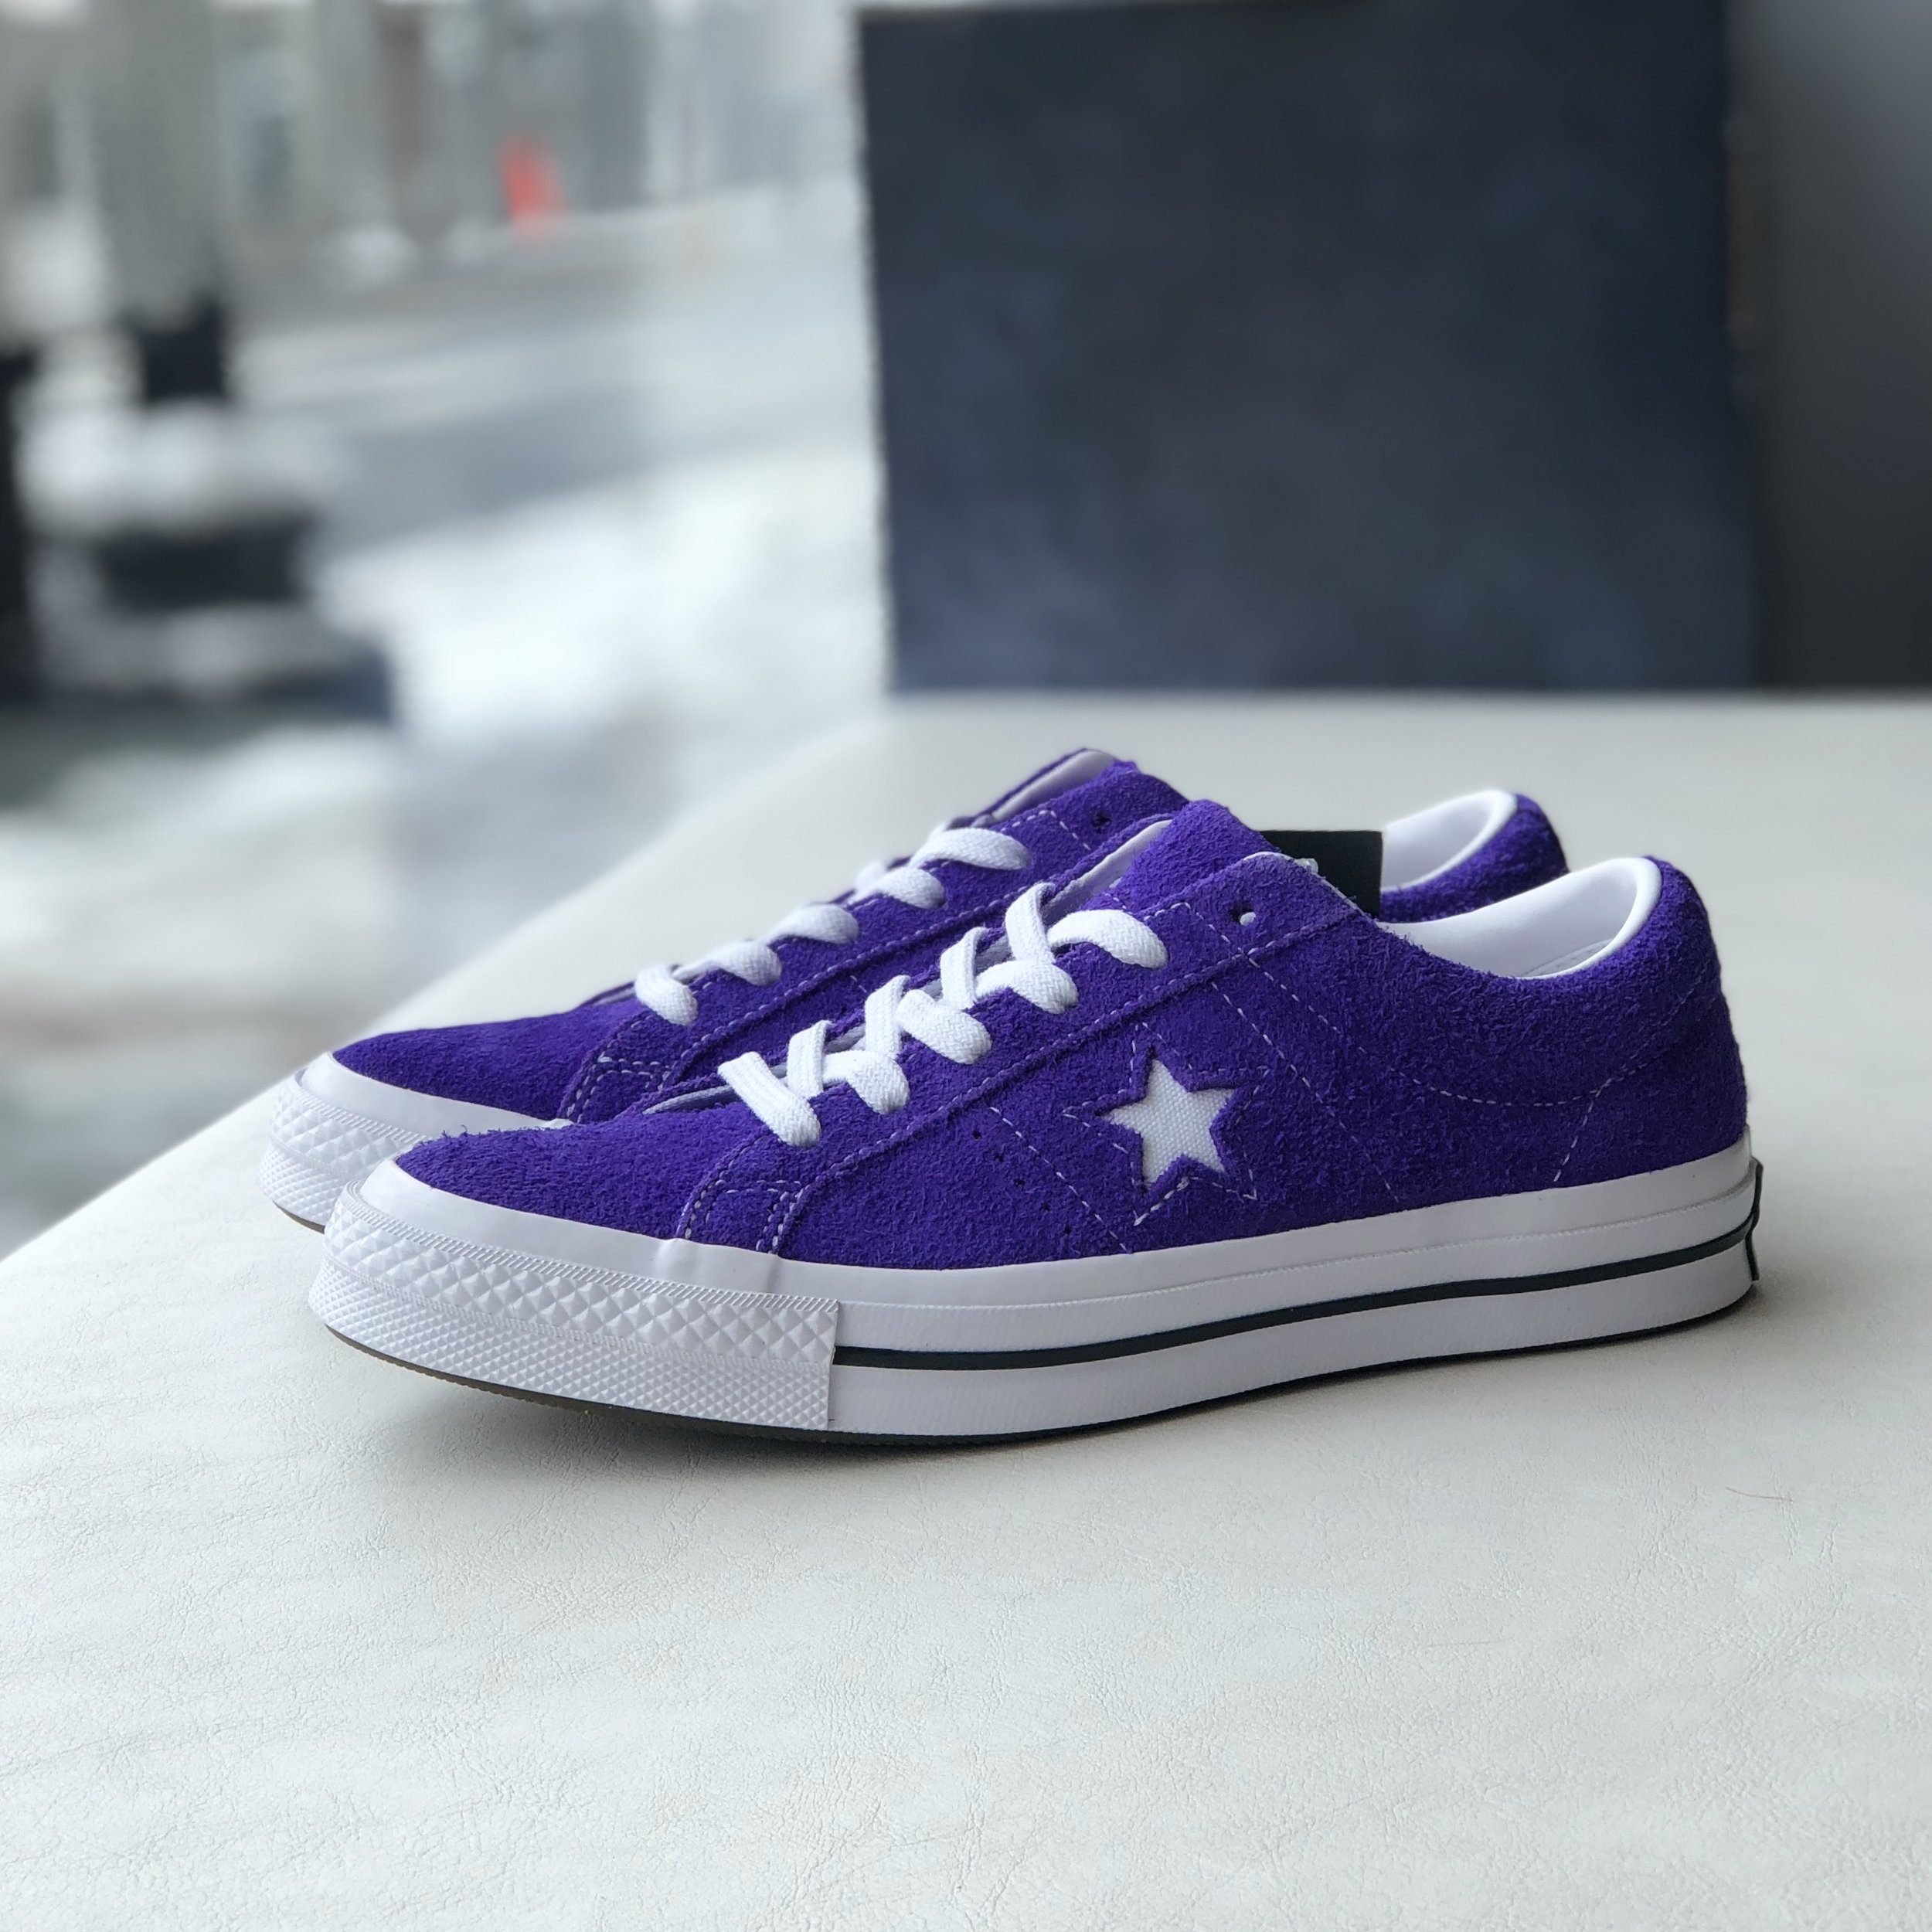 Converse One Star Premium Suede Low in